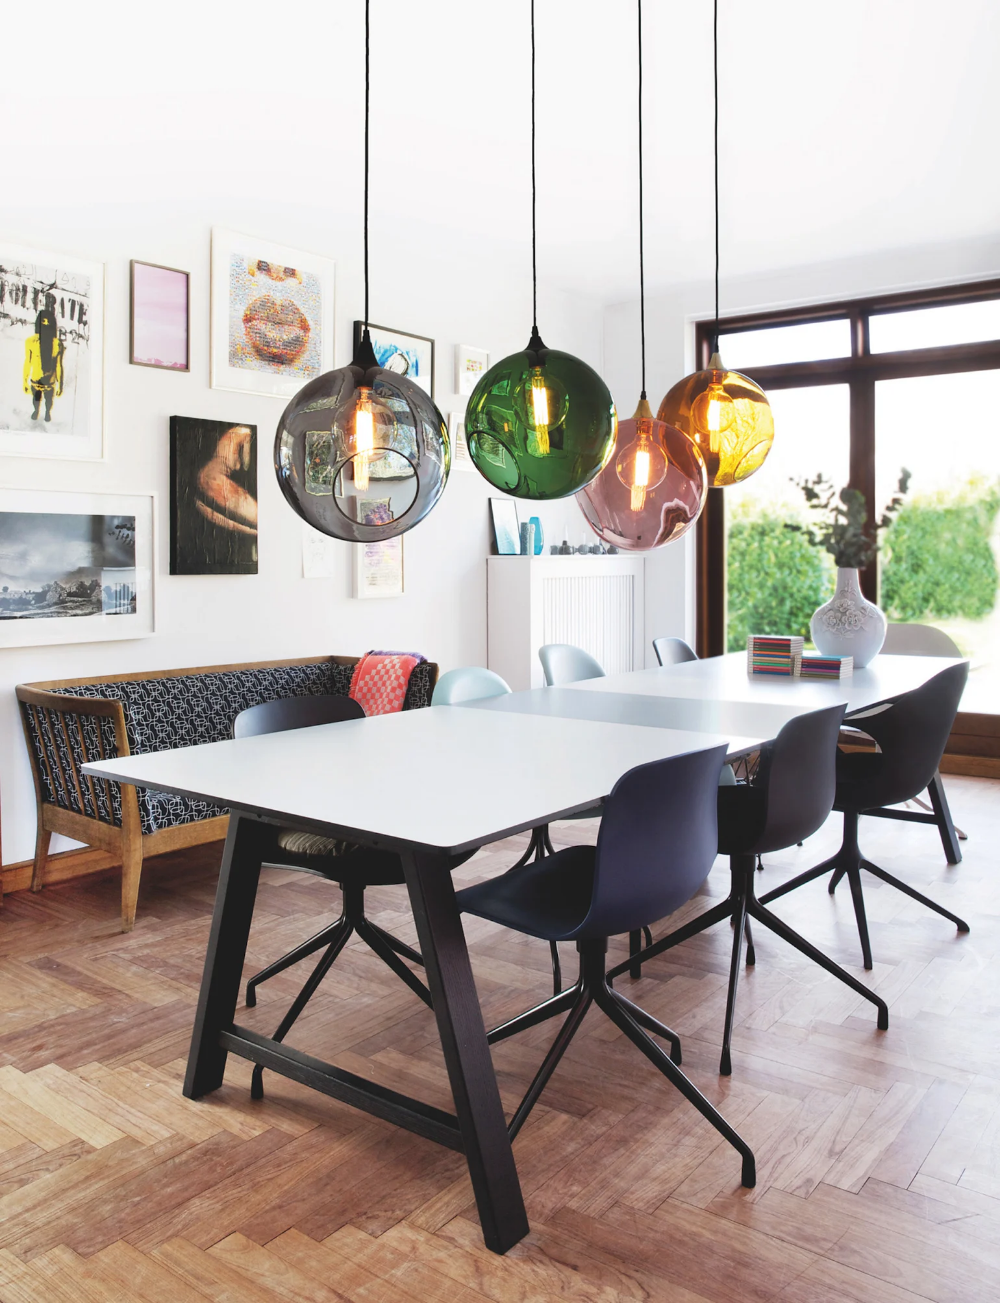 Ballroom Pendant Large In Pink Contemporary Industrial Traditional Mid Century Modern Pendants De Dining Table Lamps Dining Room Pendant Modern Dining Room